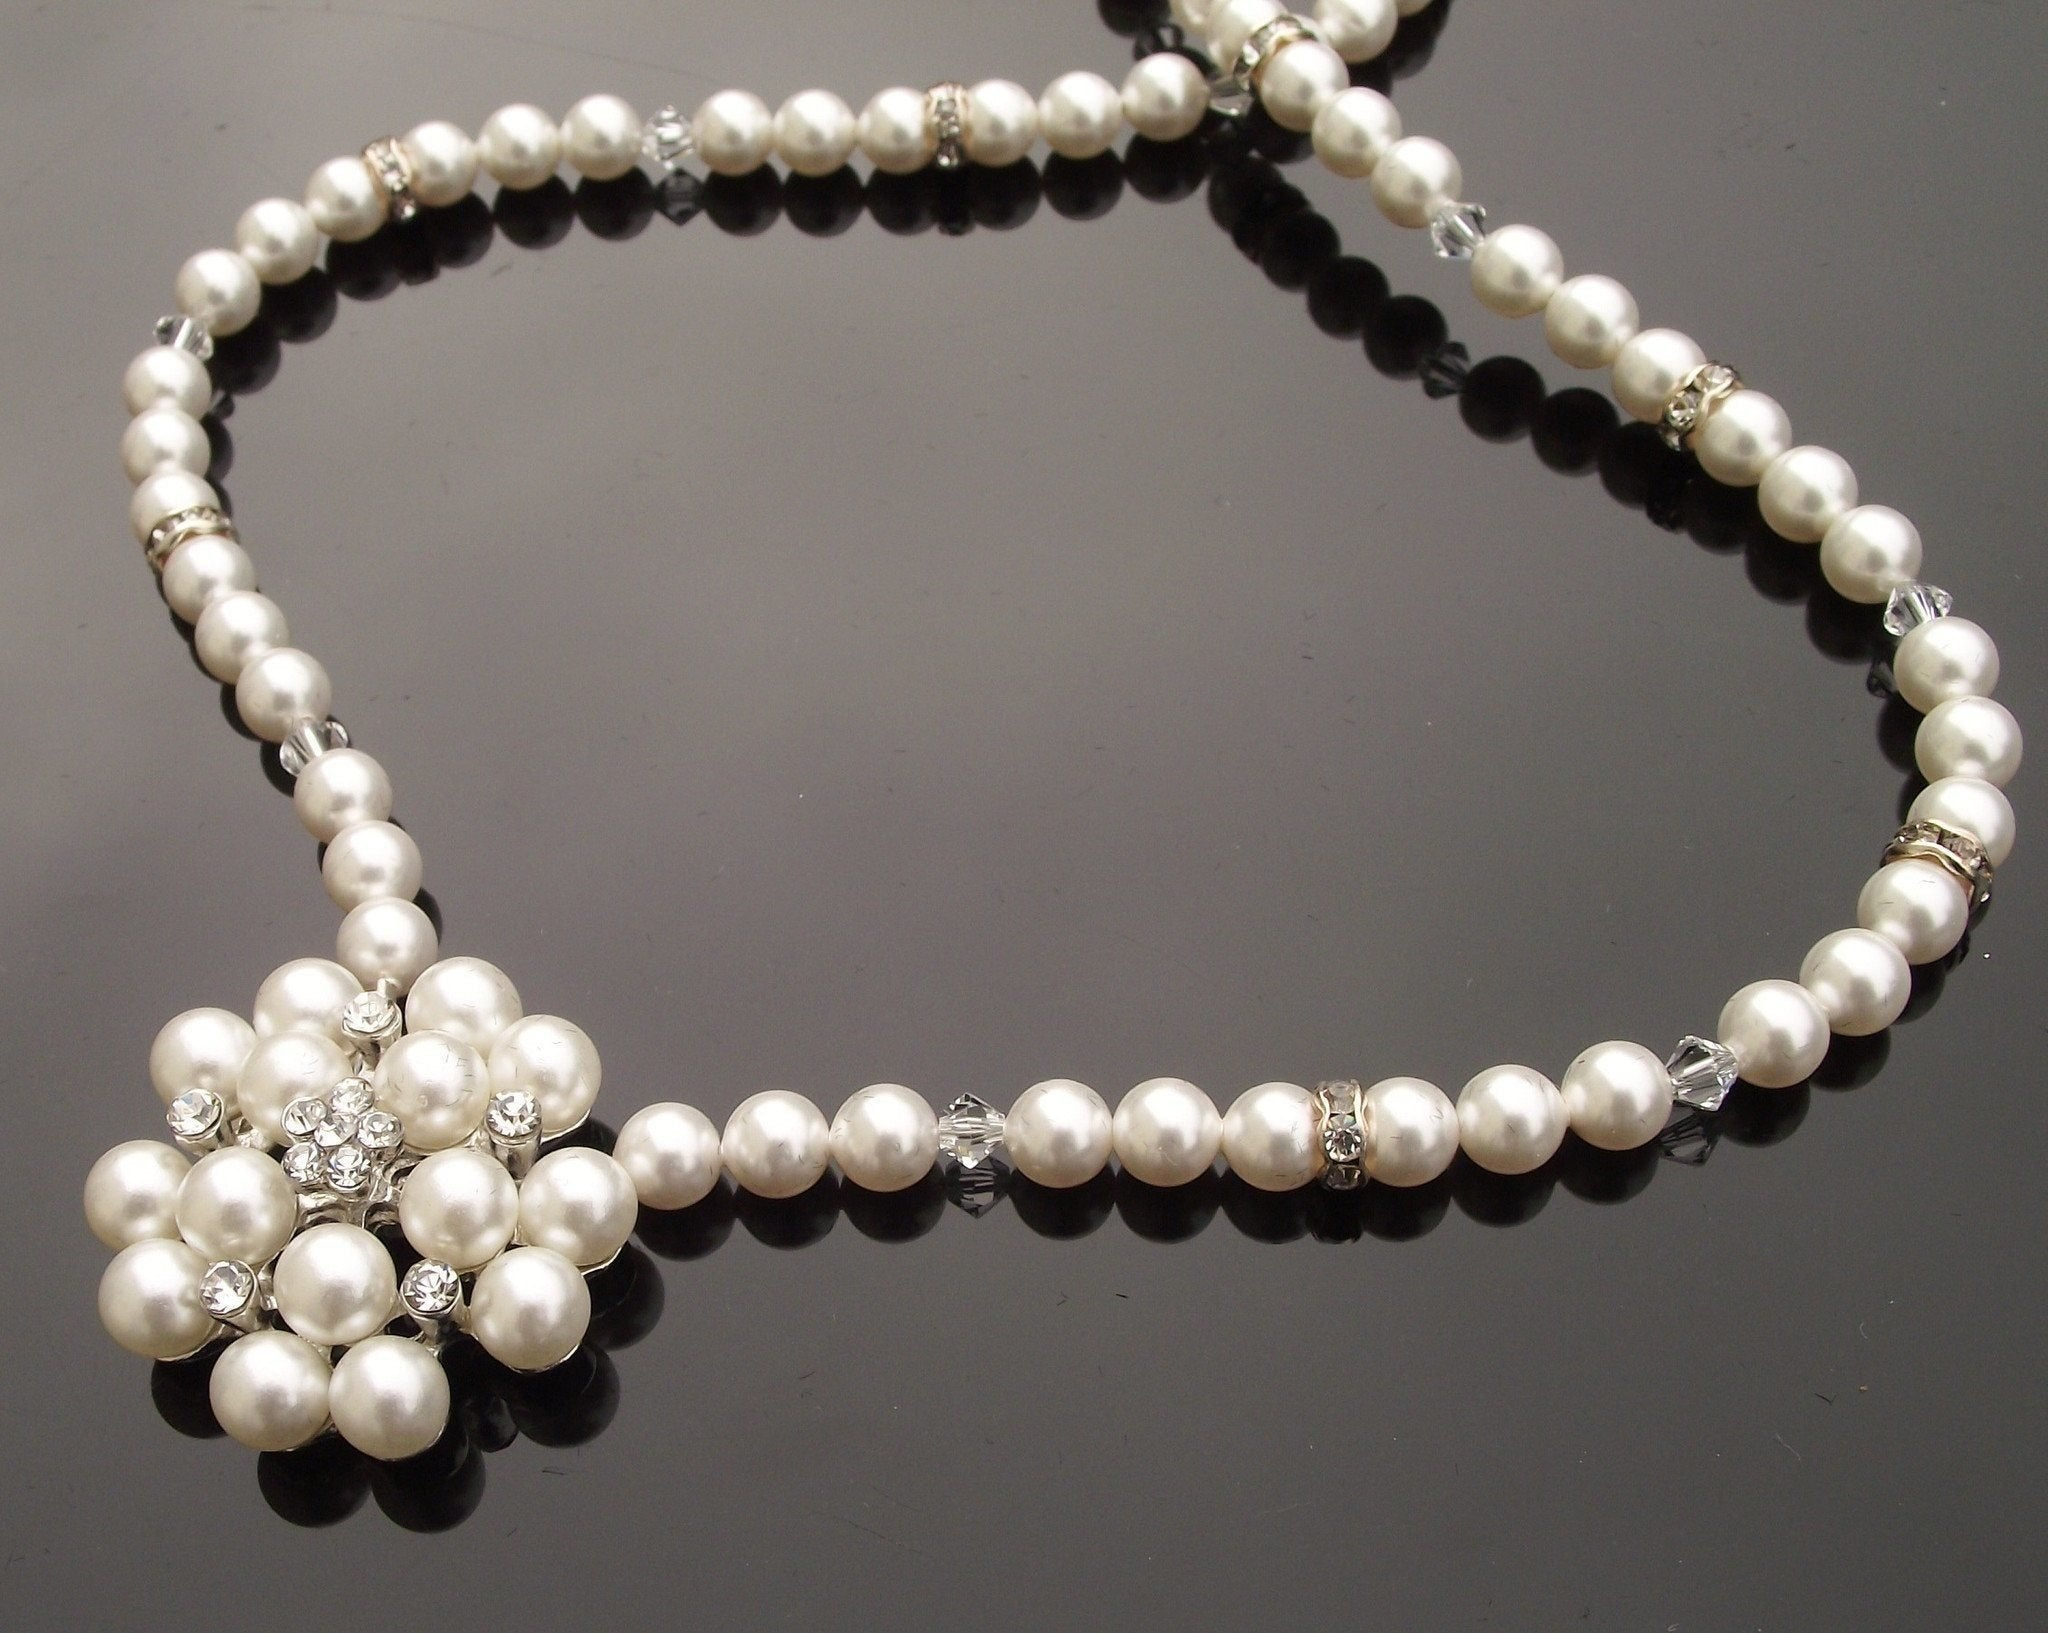 Wedding Necklace - Pearl & Swarovski Crystal Embellished Necklace, Meredith